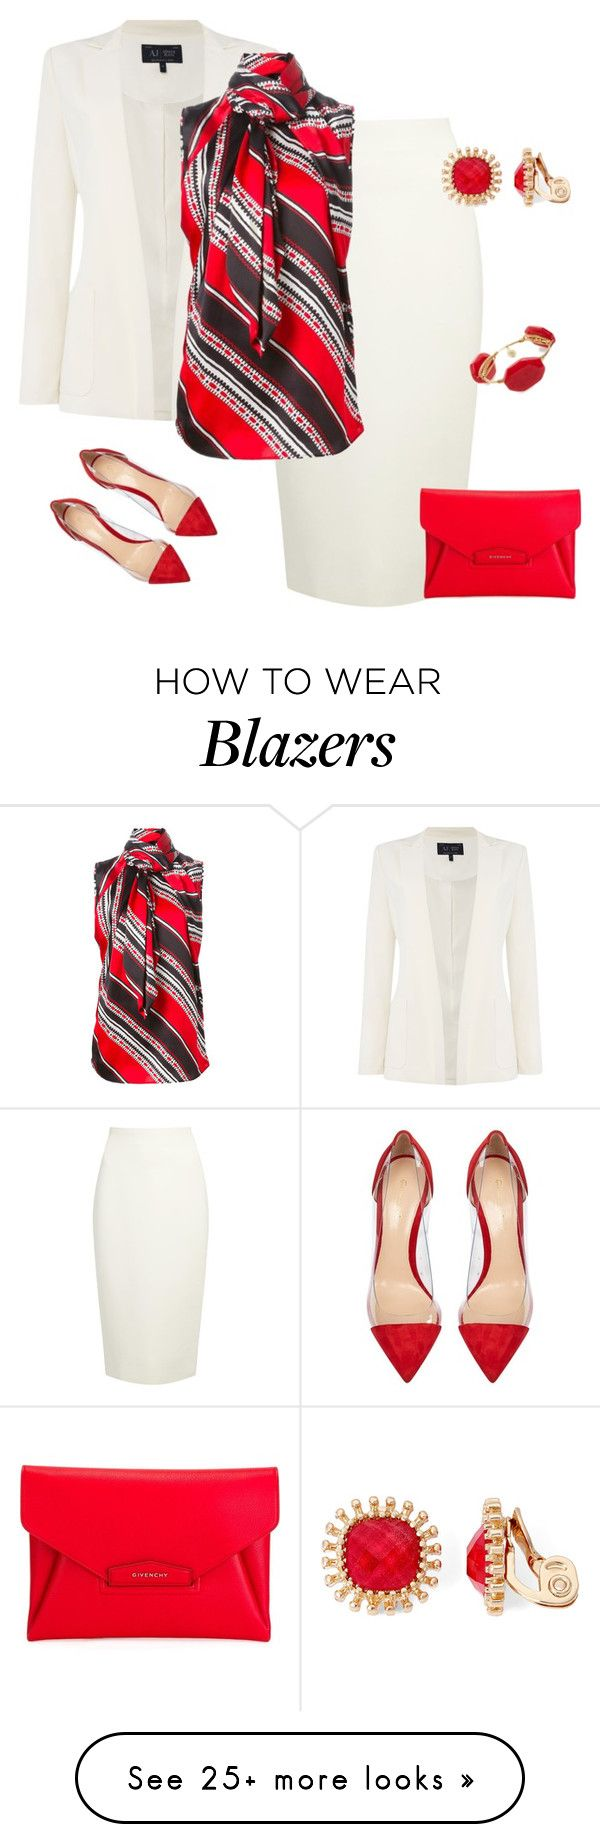 """outfit 3674"" by natalyag on Polyvore featuring Armani Jeans, Donna Karan, Gianvito Rossi, Givenchy, Monet and Bourbon and Boweties"